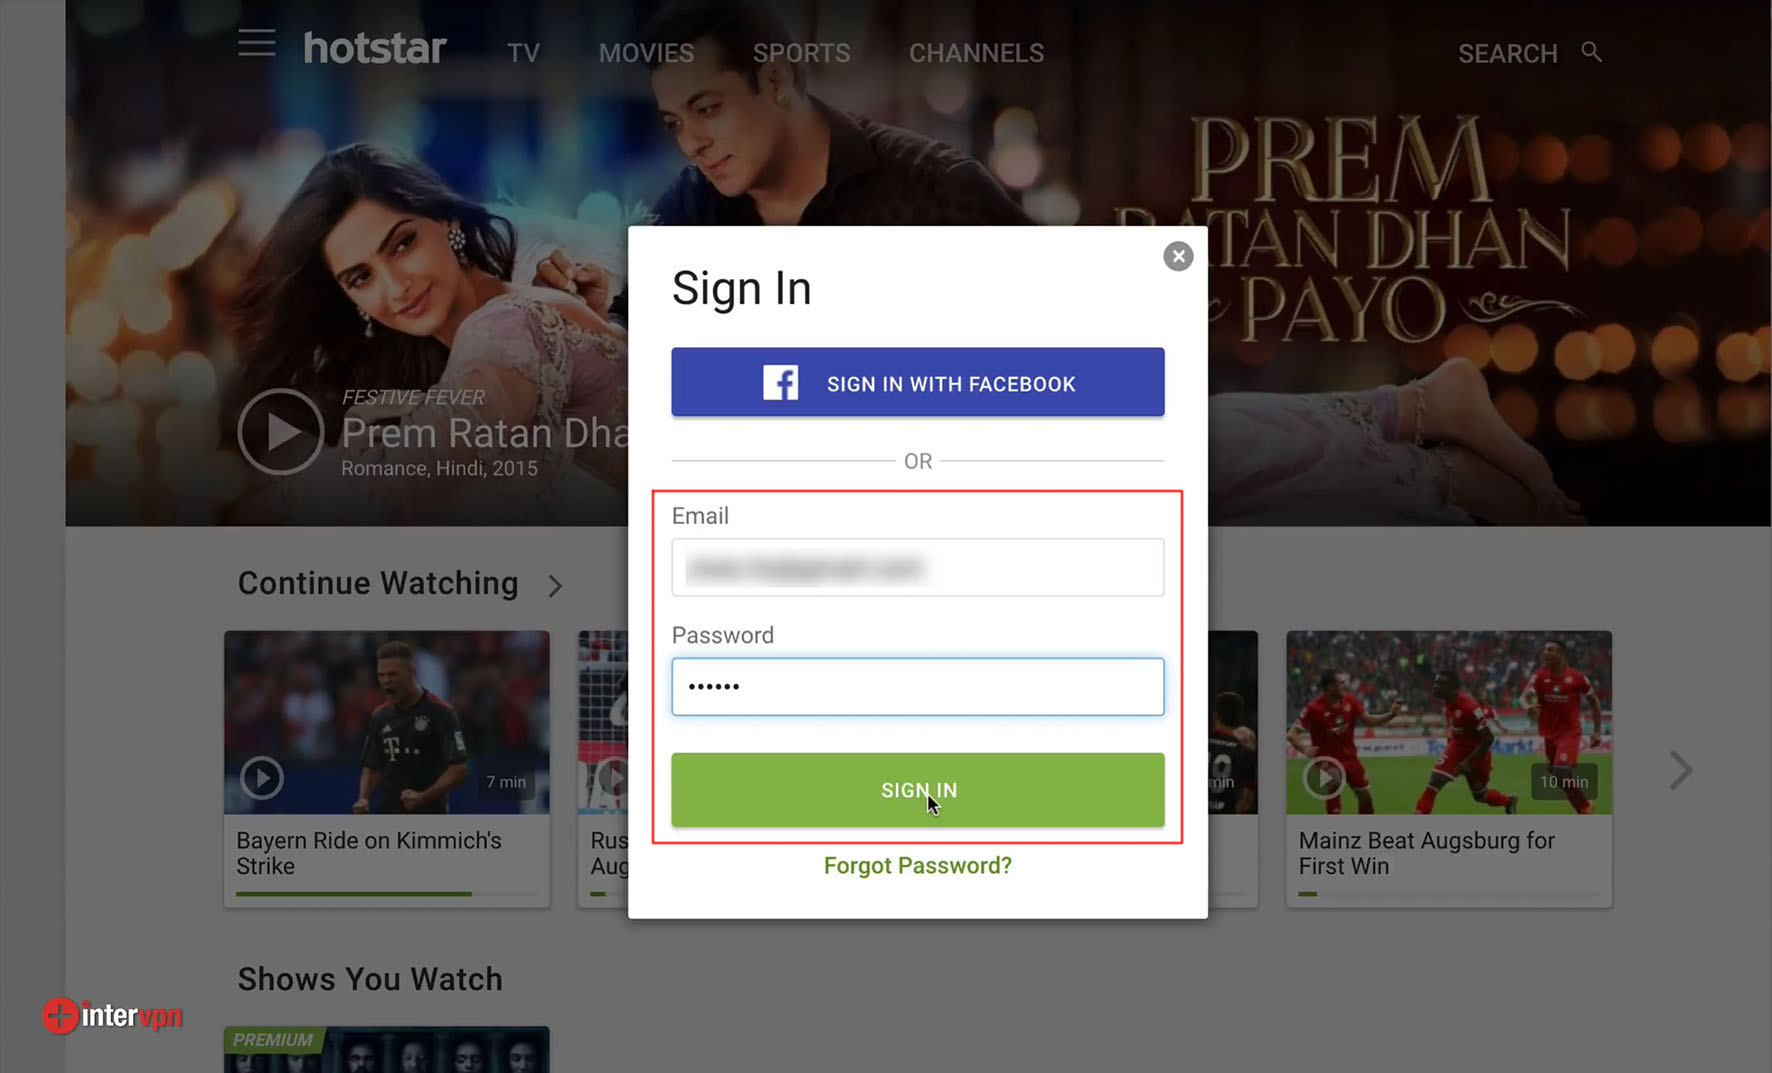 how to cancel prime membership in hotstar